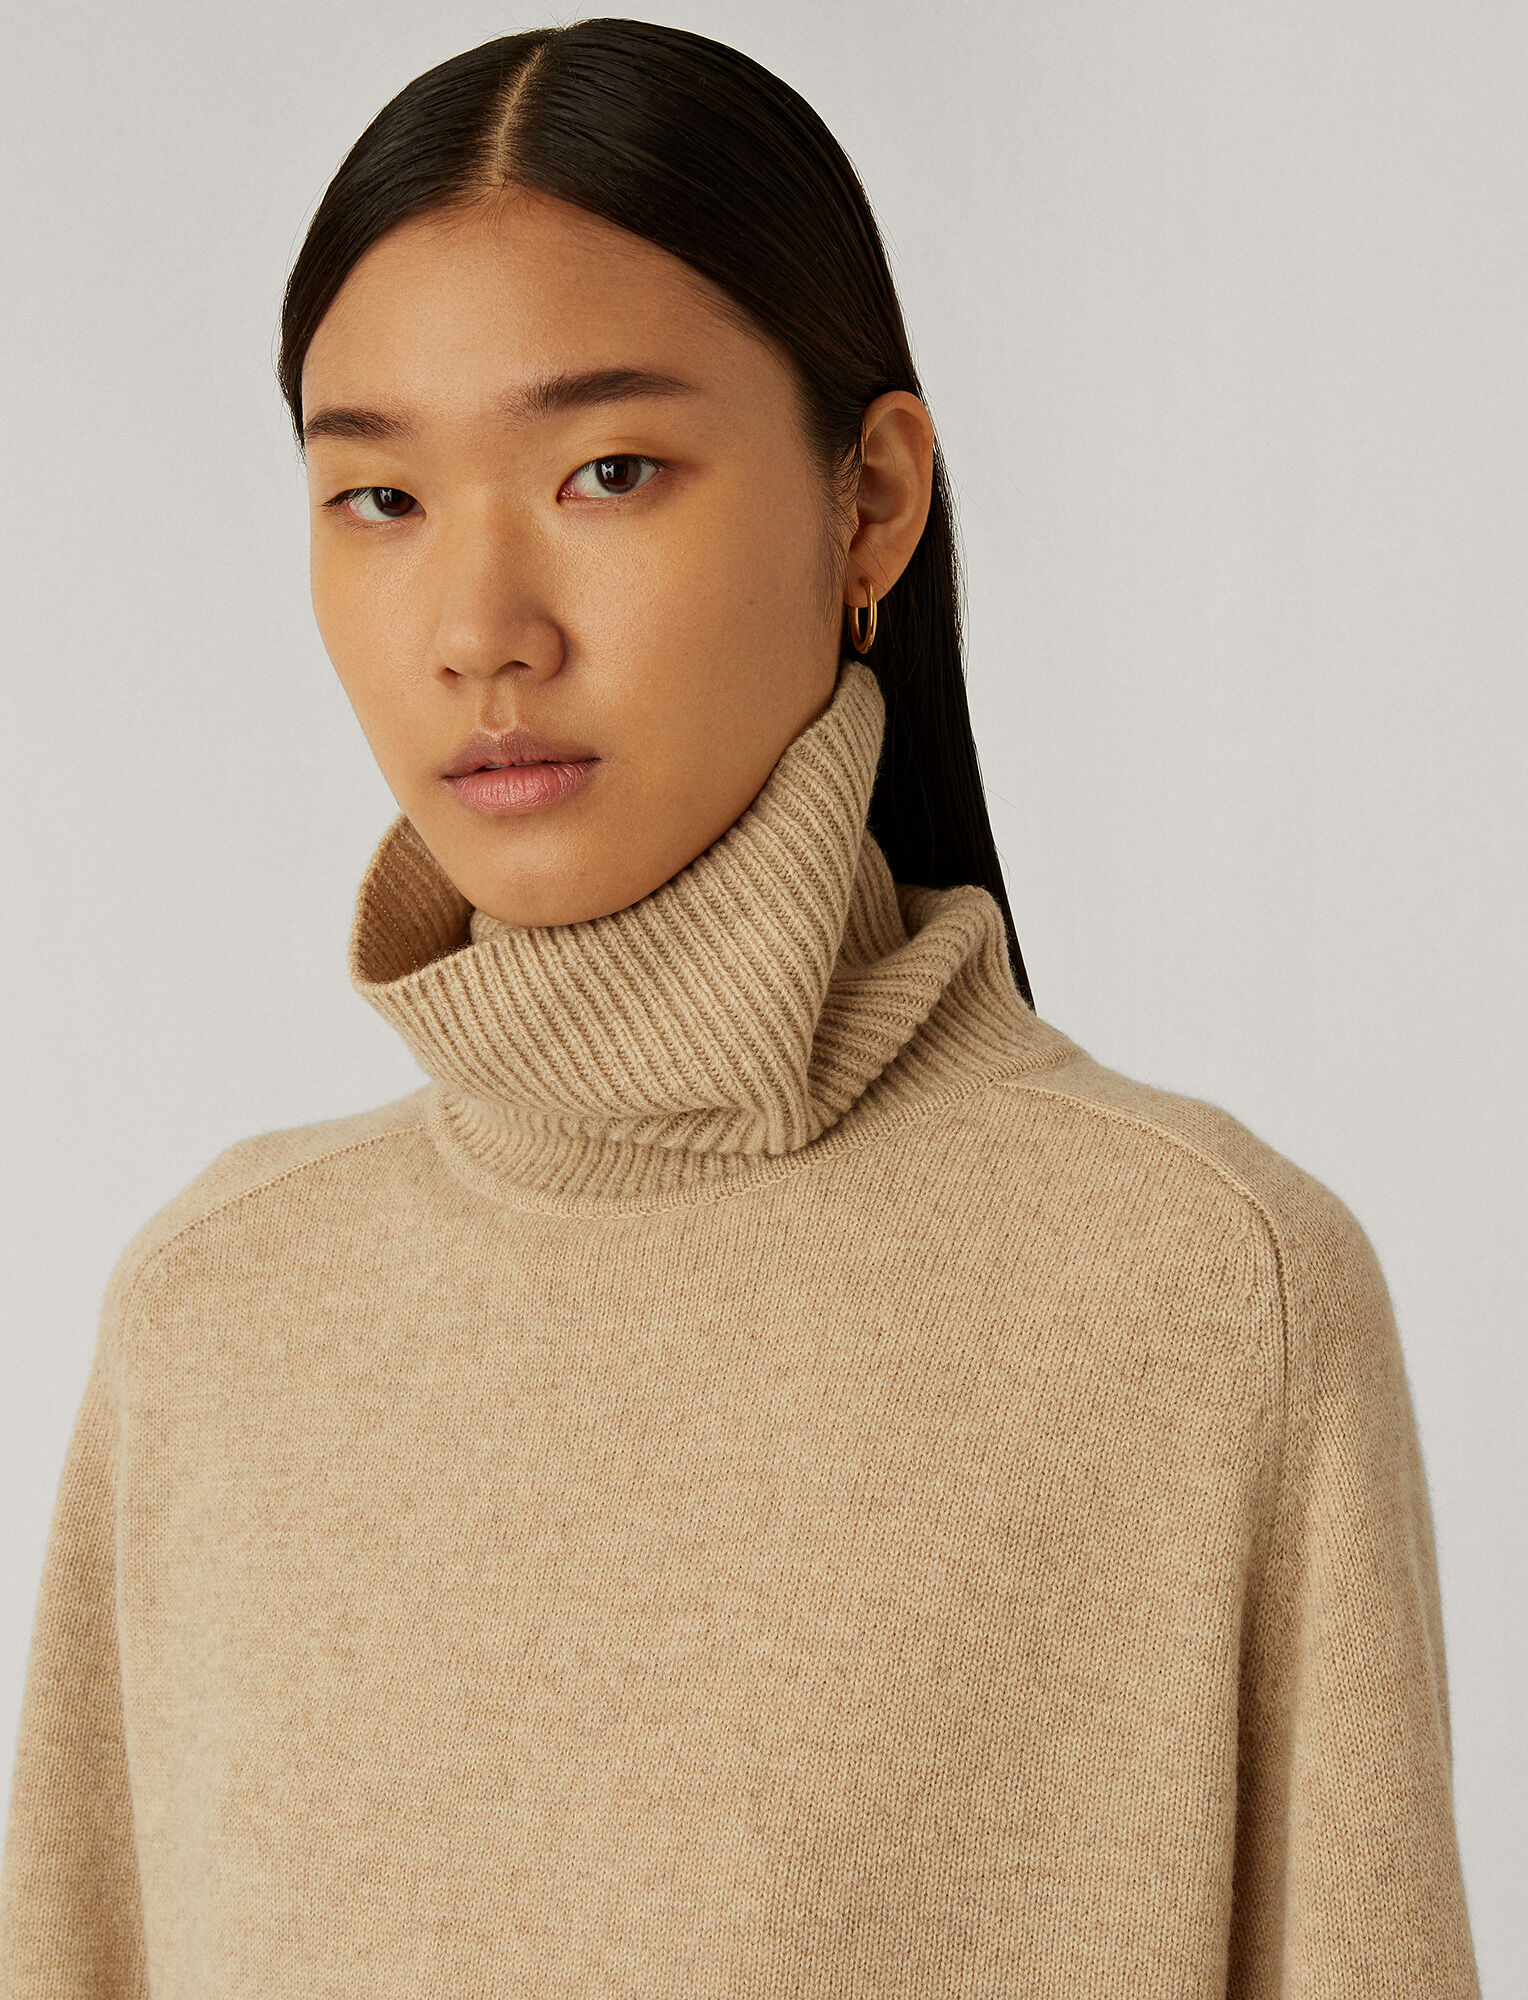 Joseph, Roll Neck O'Size Knit, in Linen